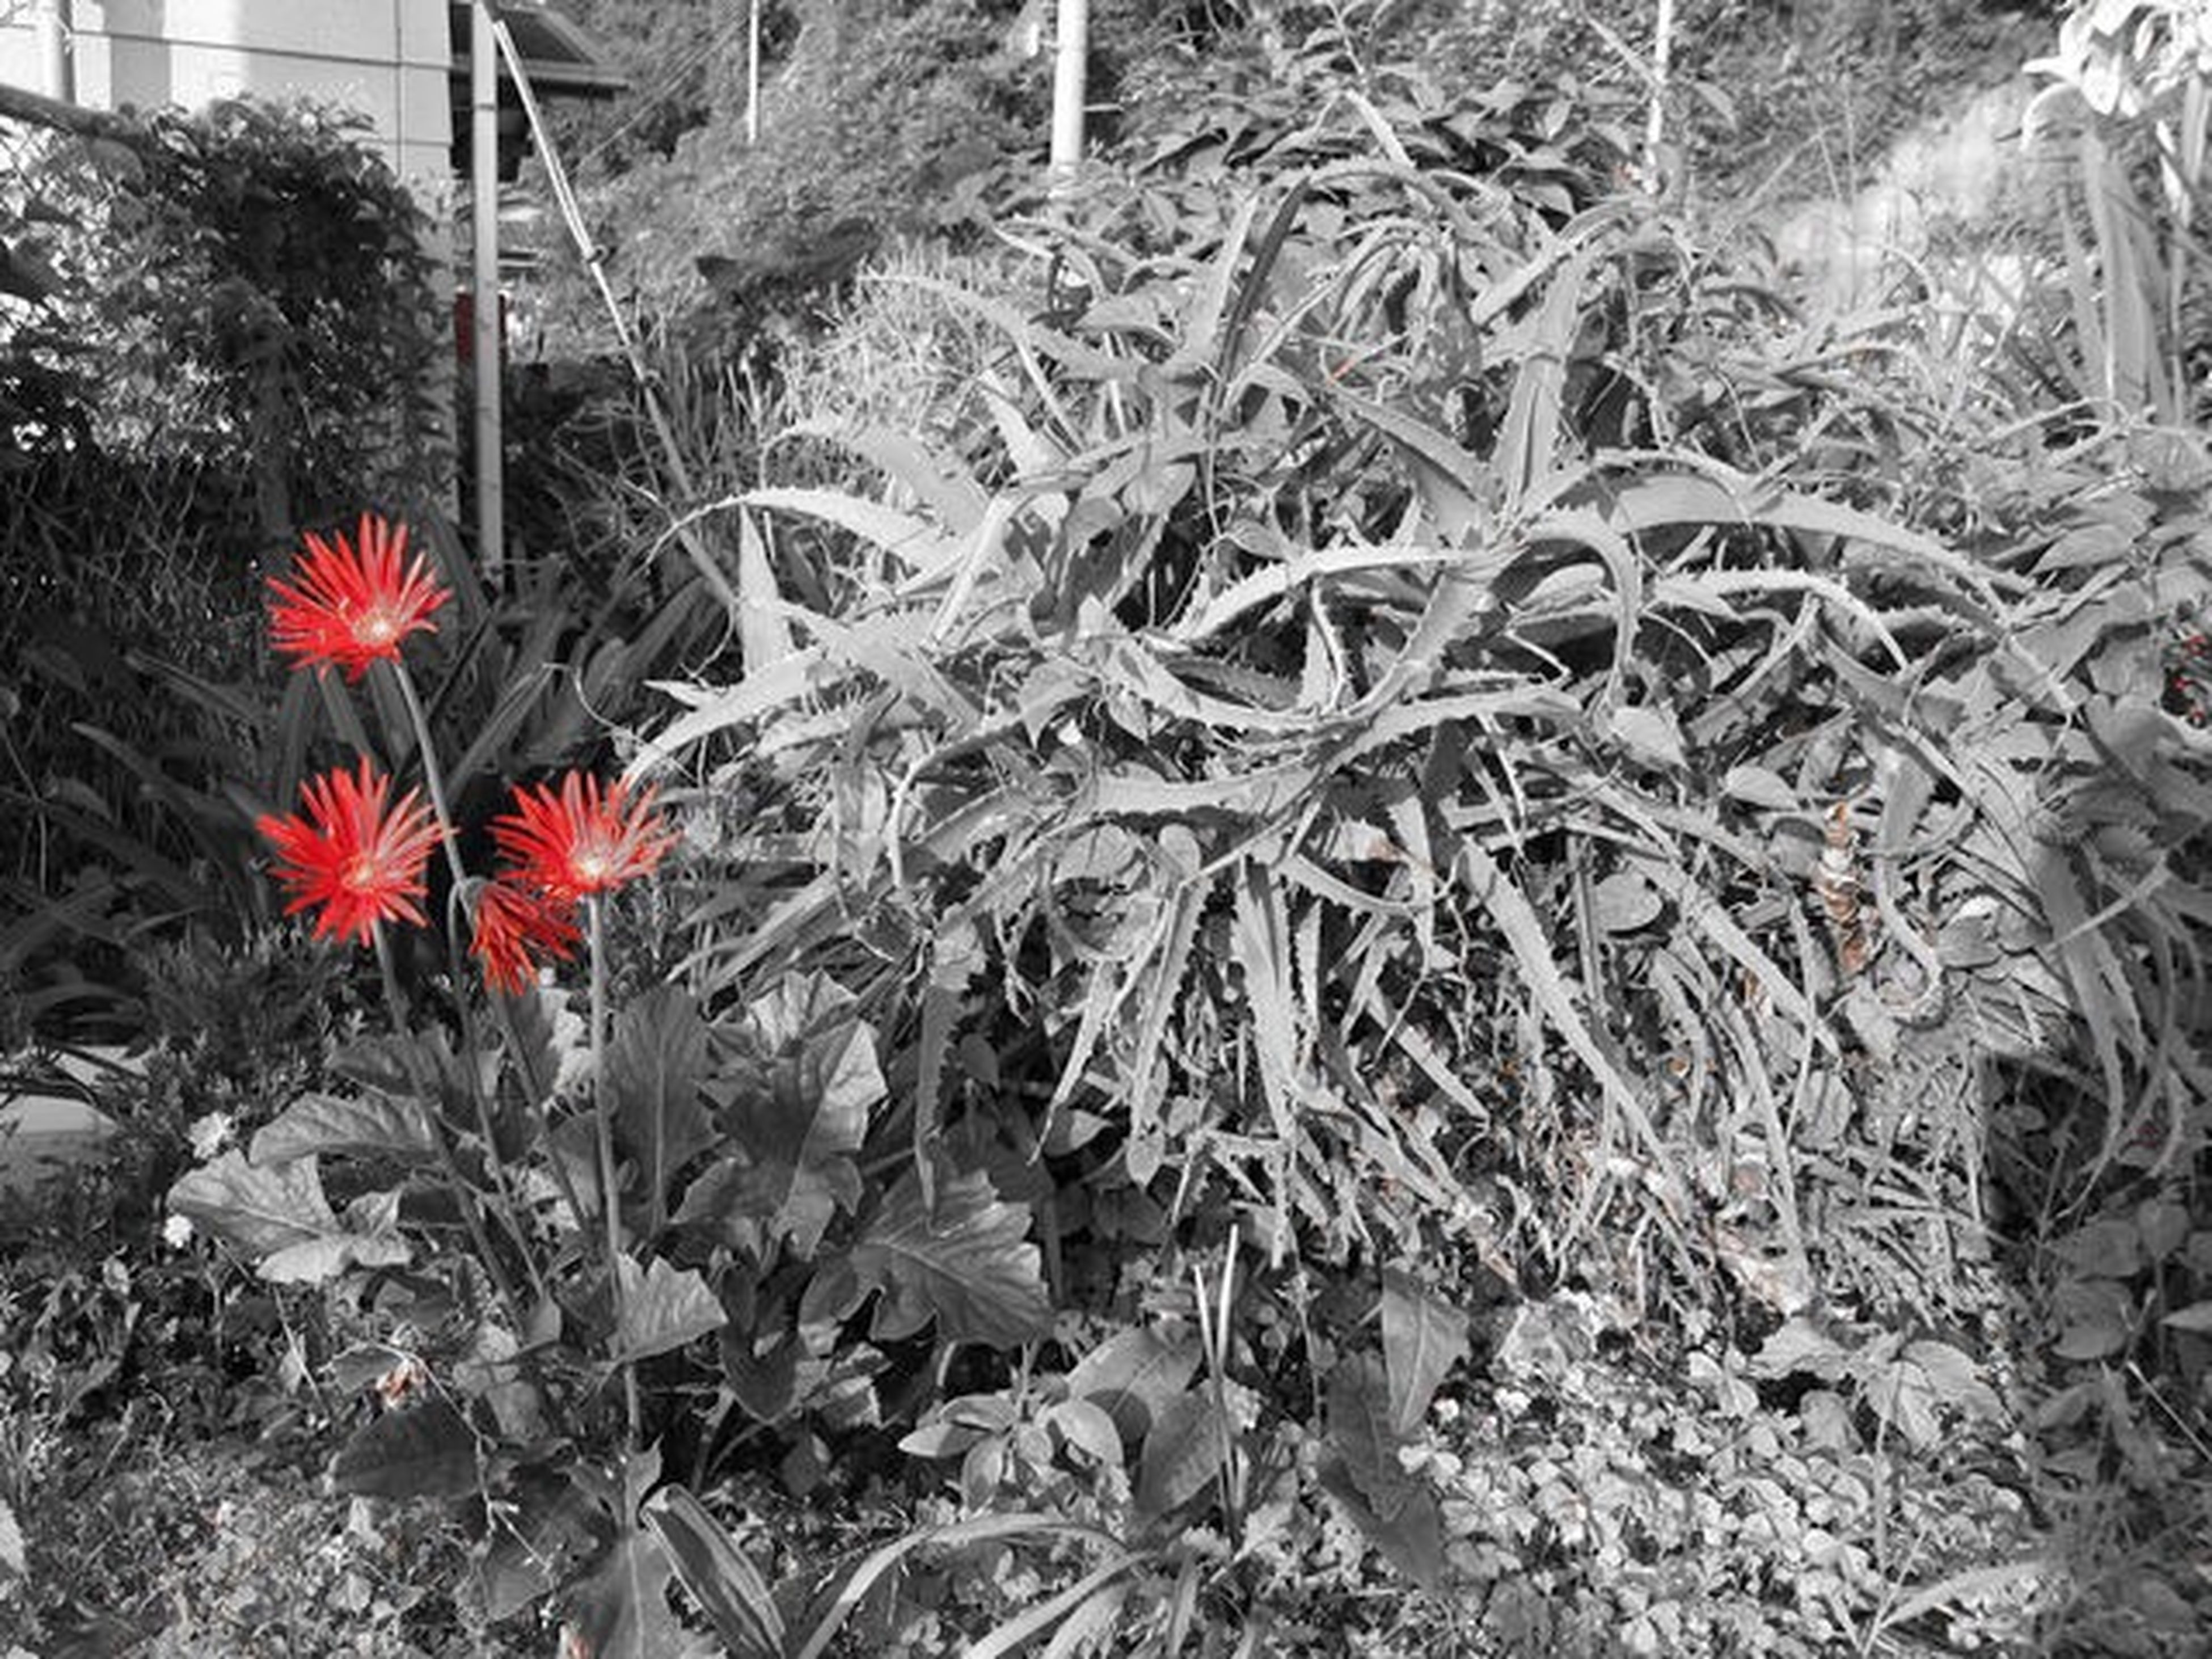 growth, plant, flower, isolated color, red, nature, no people, outdoors, beauty in nature, day, freshness